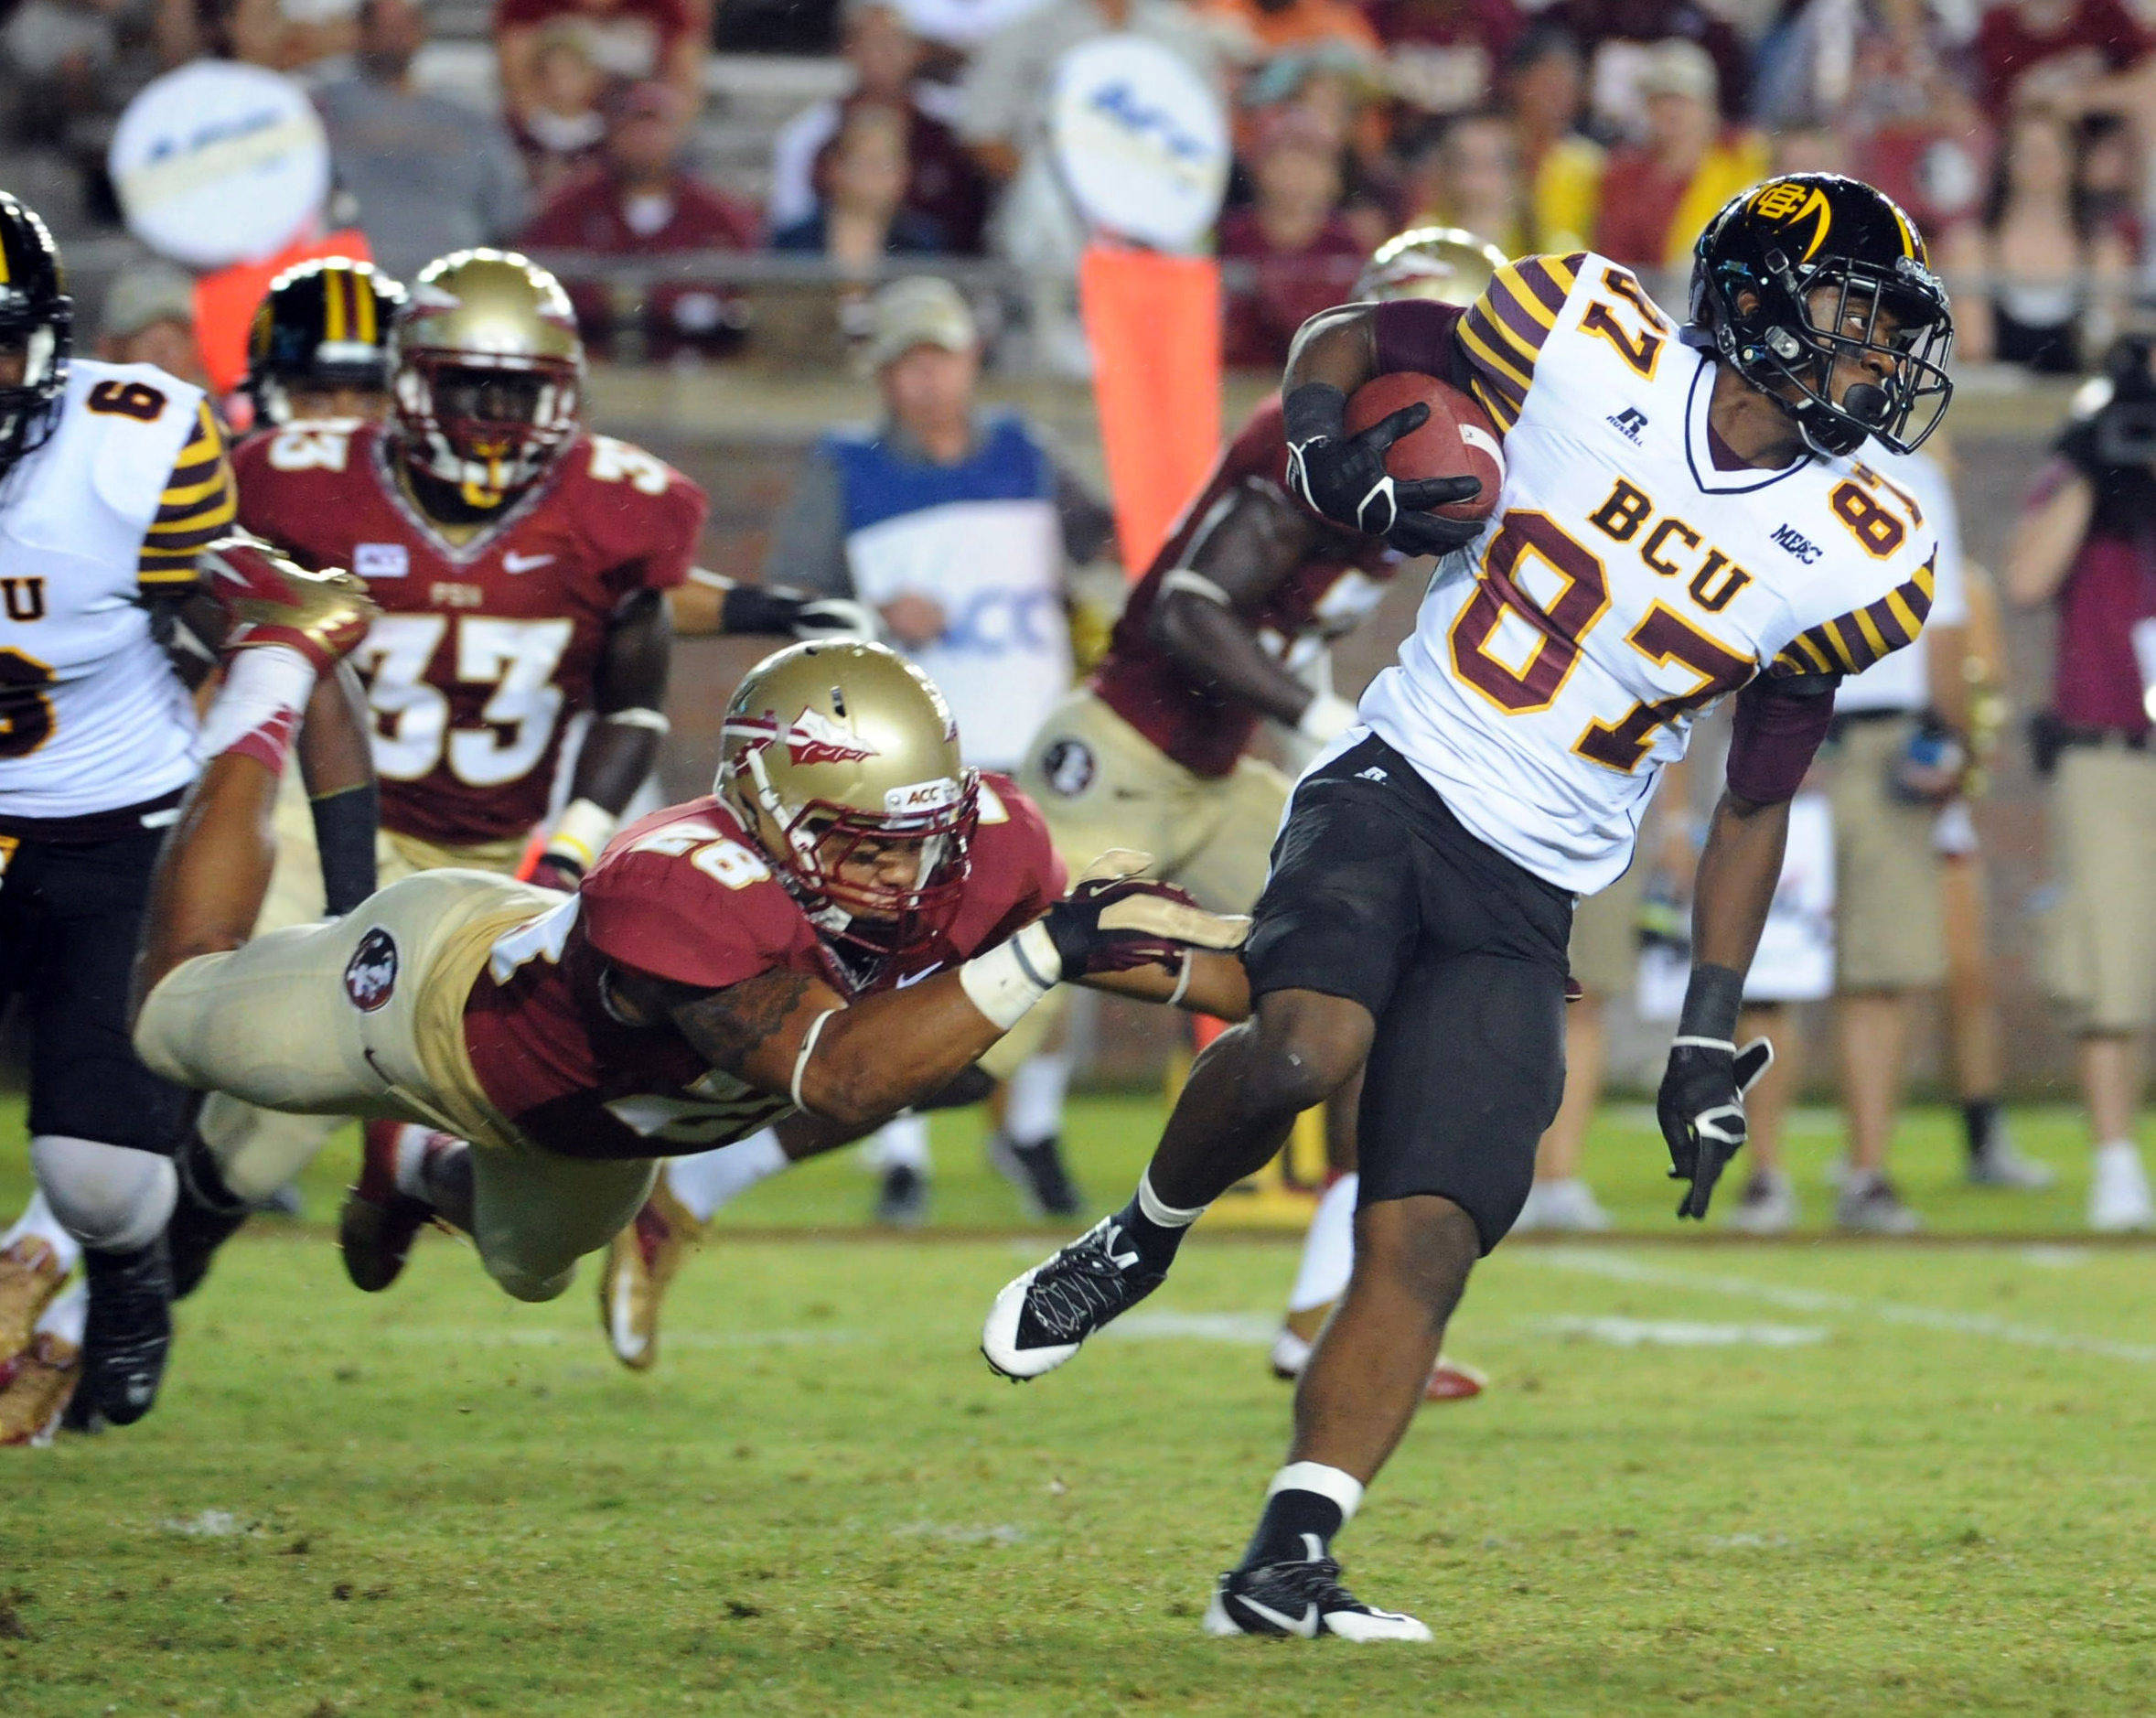 Bethune-Cookman Wildcats wide receiver Jawill Davis (87) runs past Florida State Seminoles linebacker Nigel Terrell (28) during the second half of the game. (Melina Vastola-USA TODAY Sports)